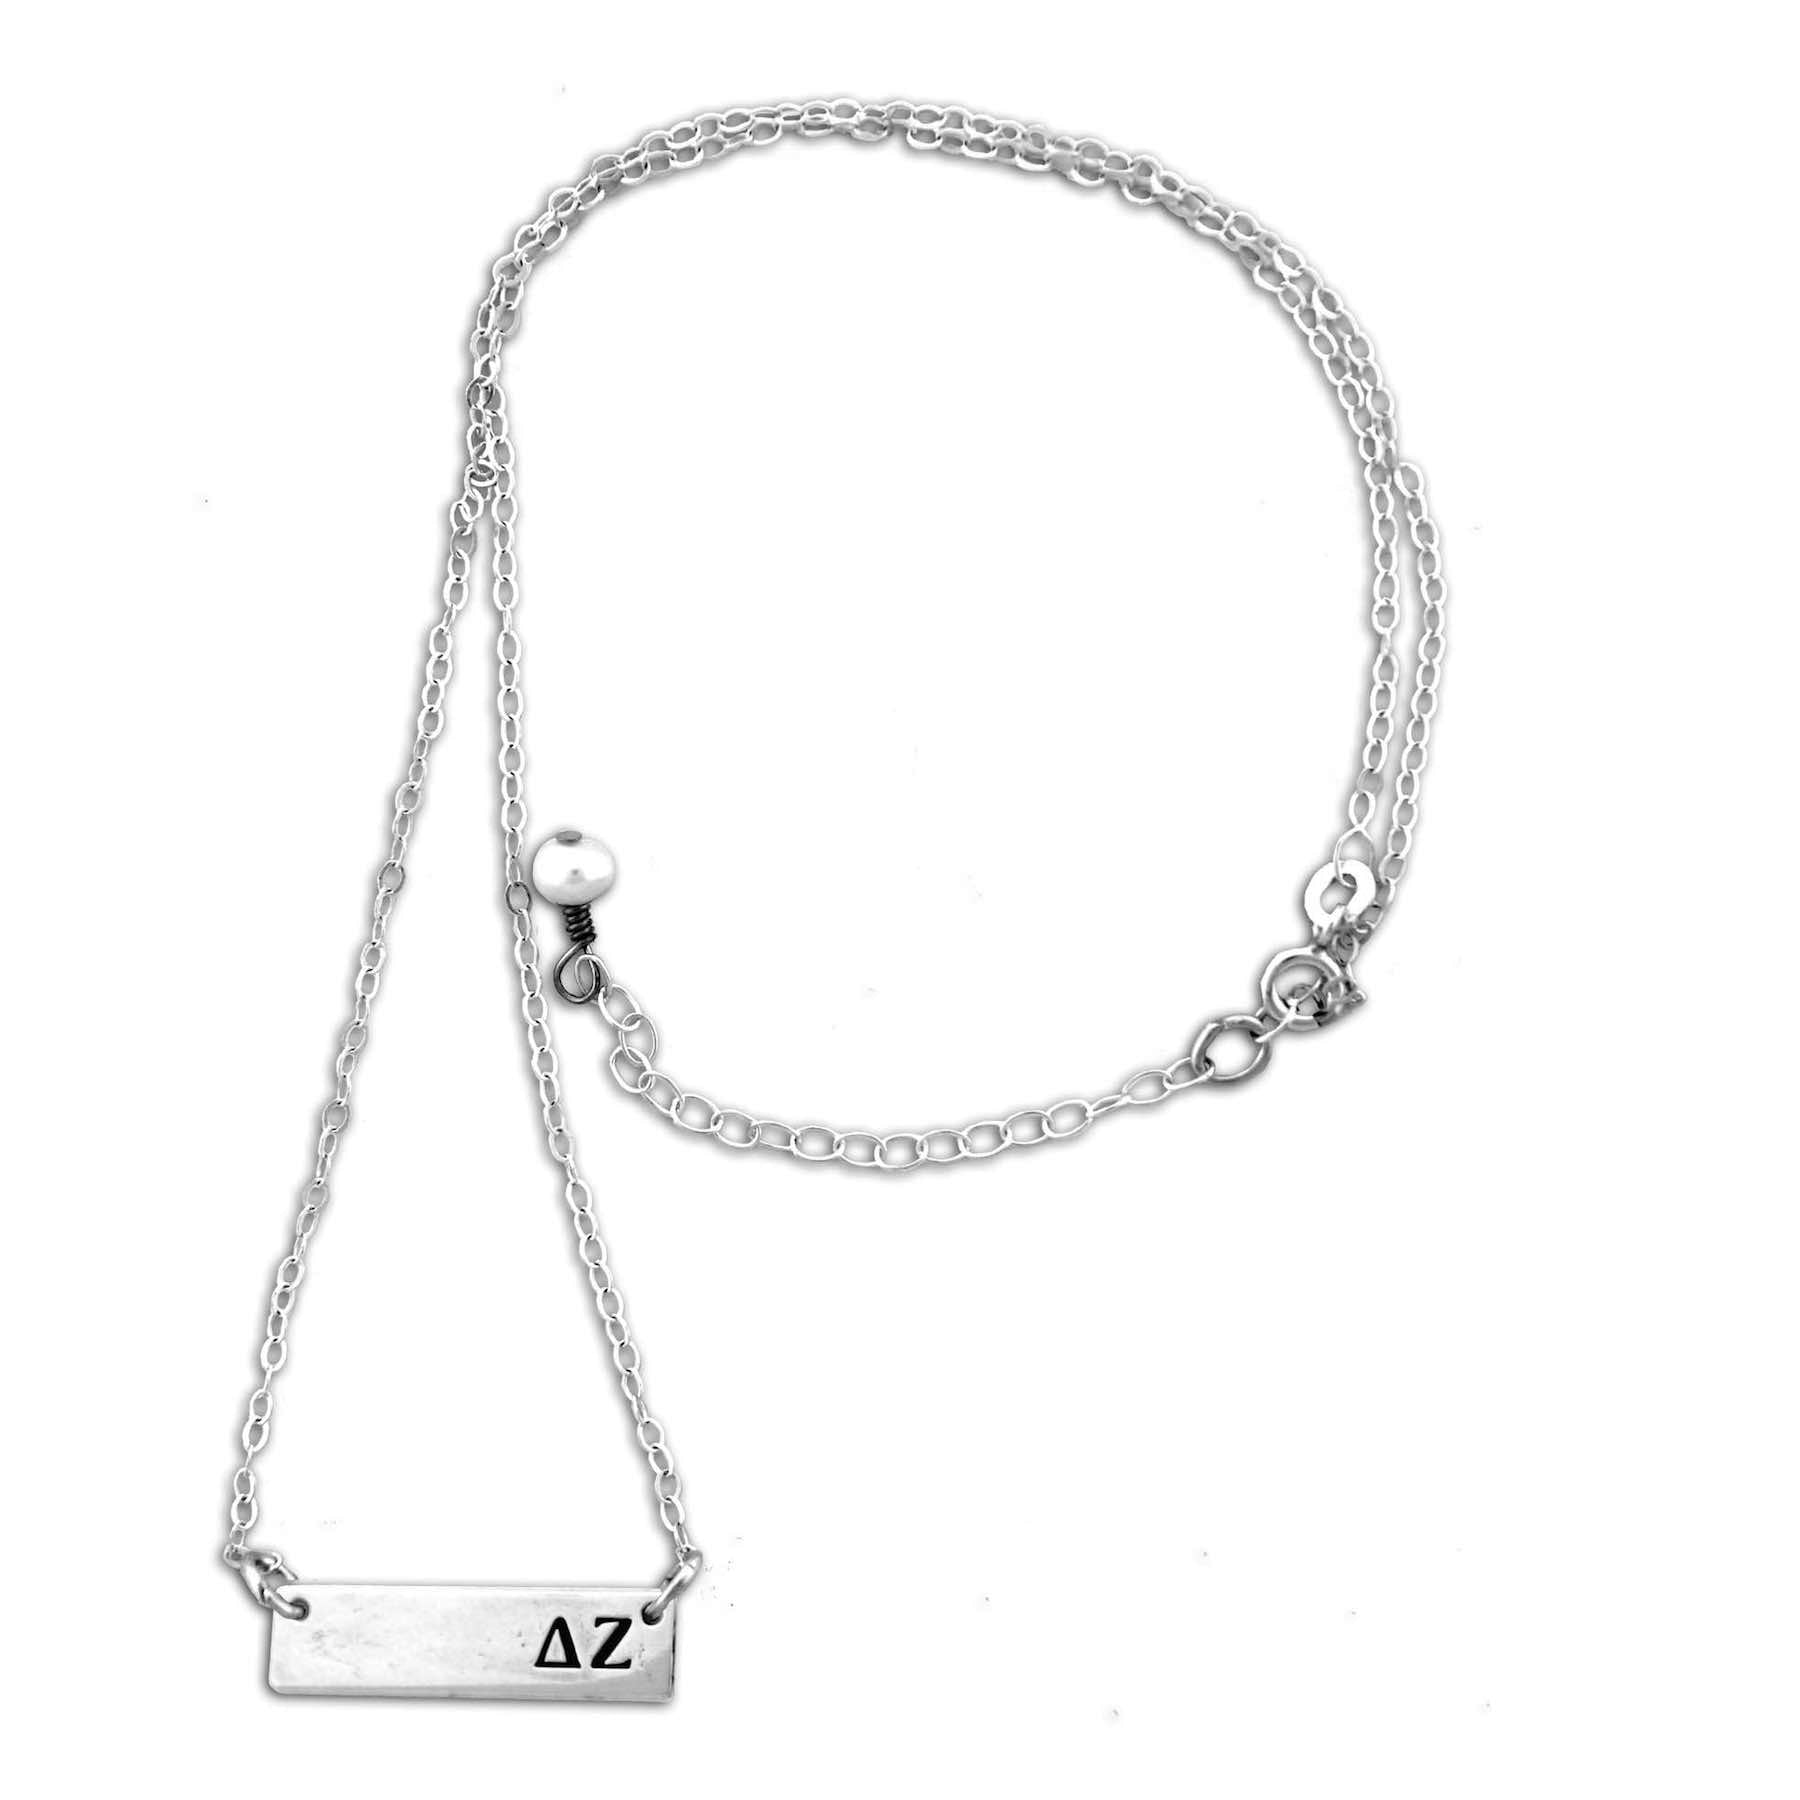 Delta Zeta Bar necklace with adjustable chain.